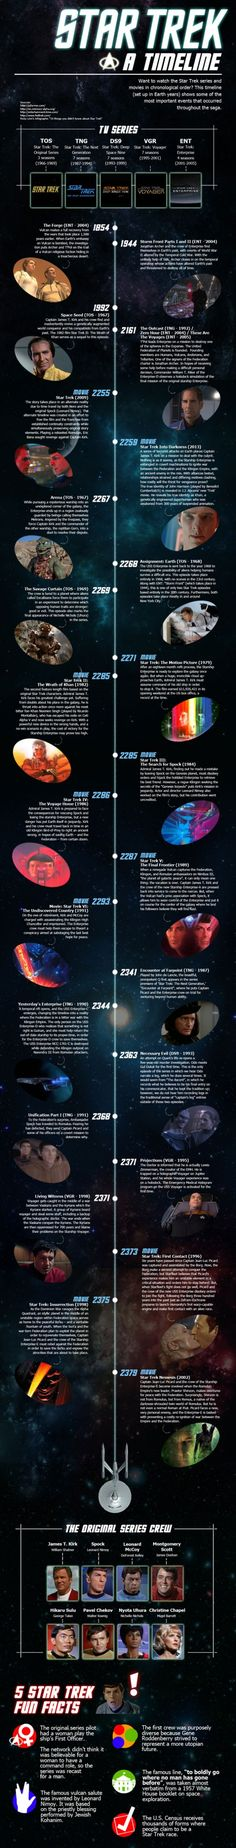 Star Trek Episodes Timeline Infographic